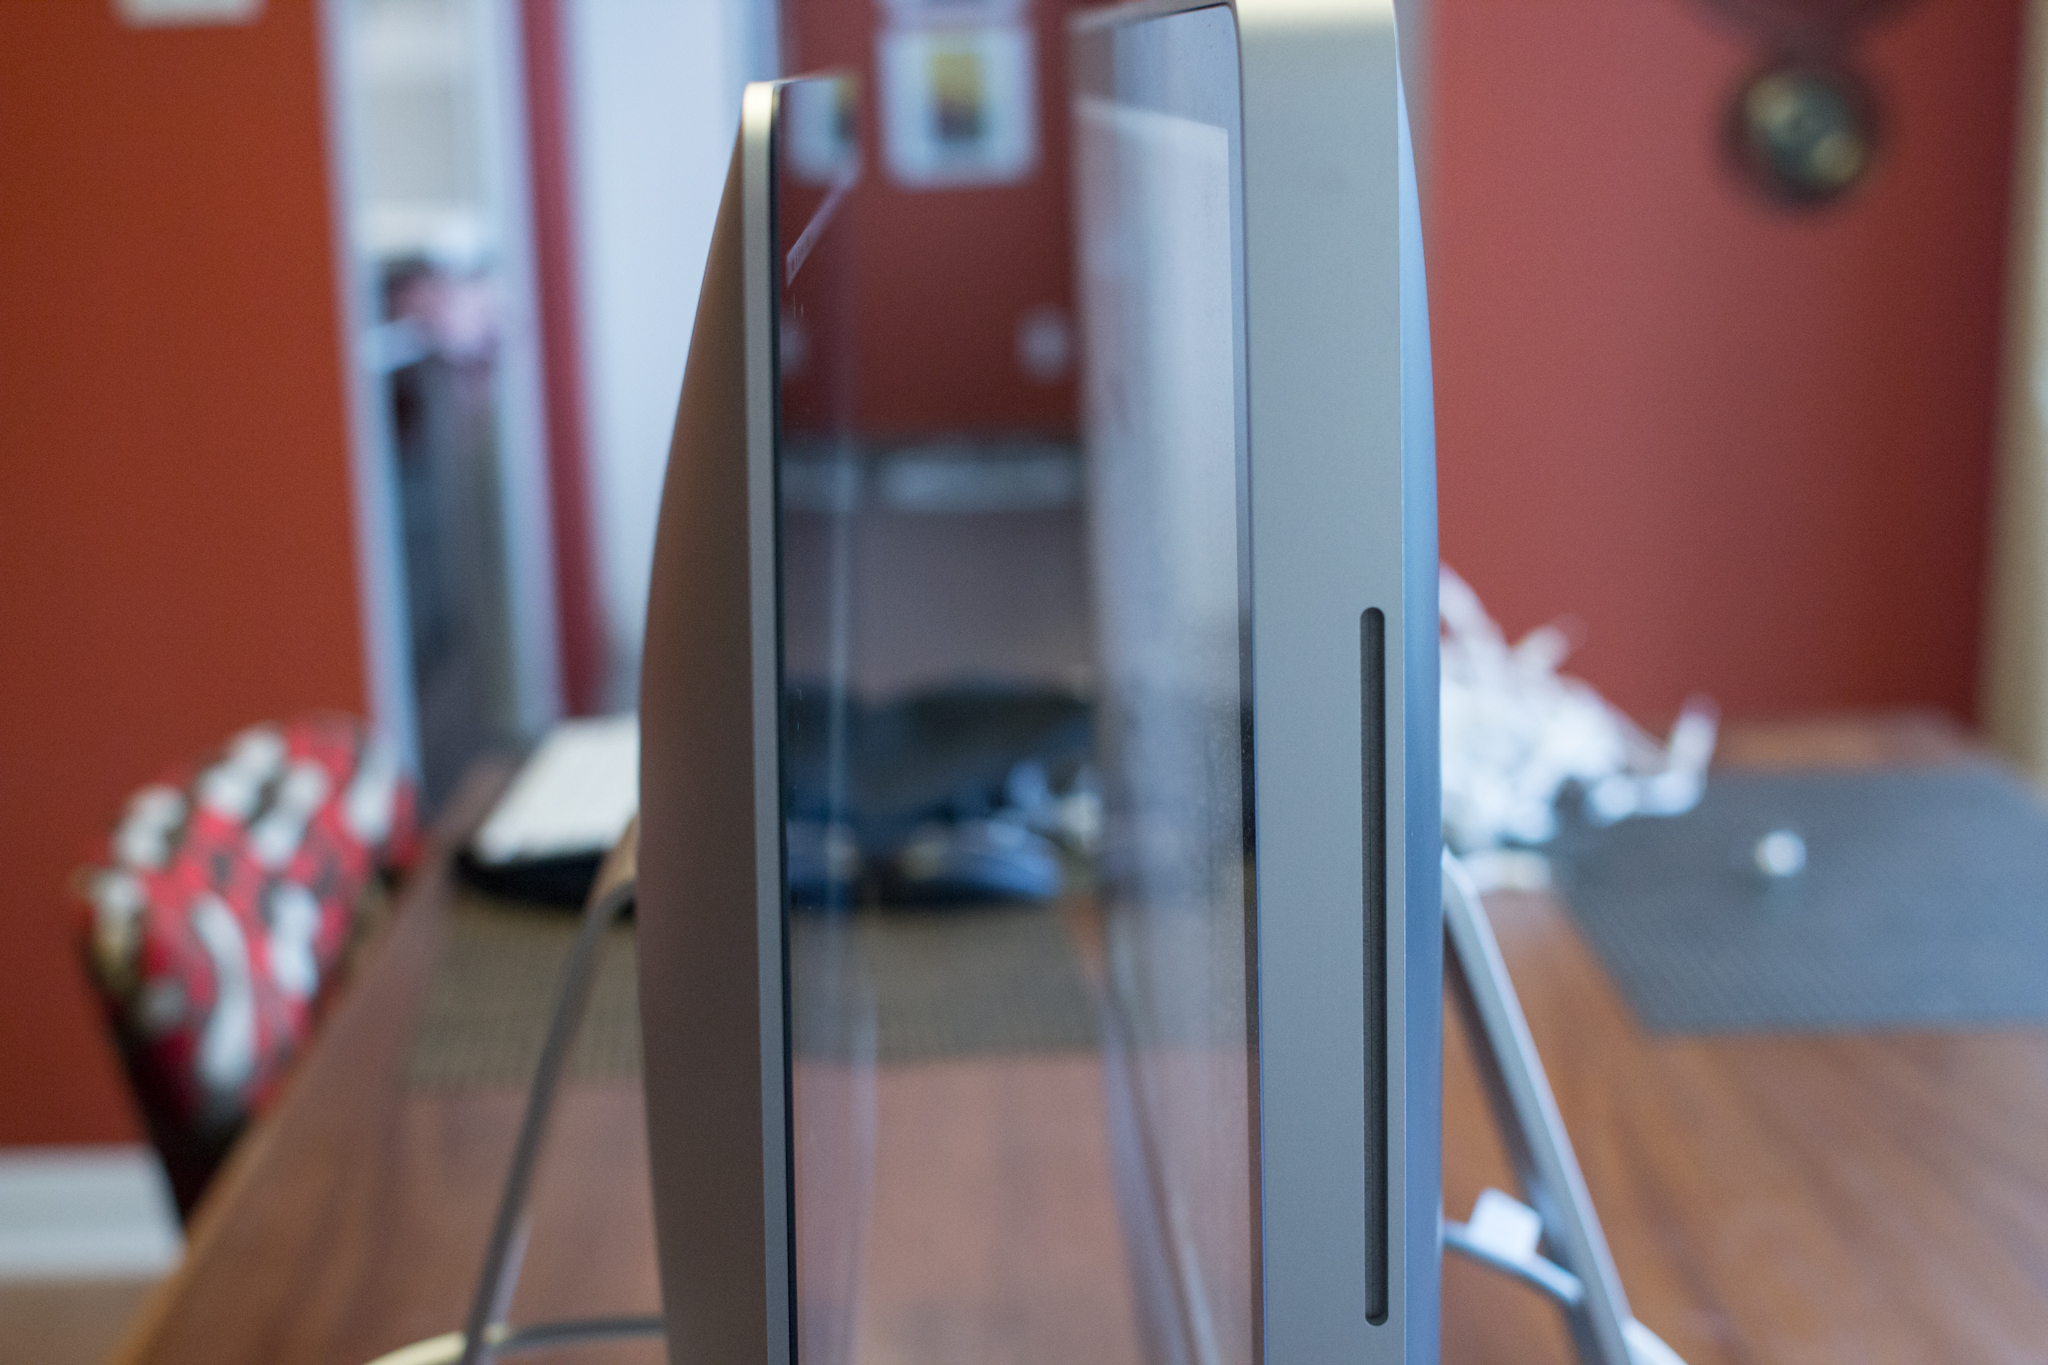 2008 iMac (right) and 2012 iMac (left) thickness comparison